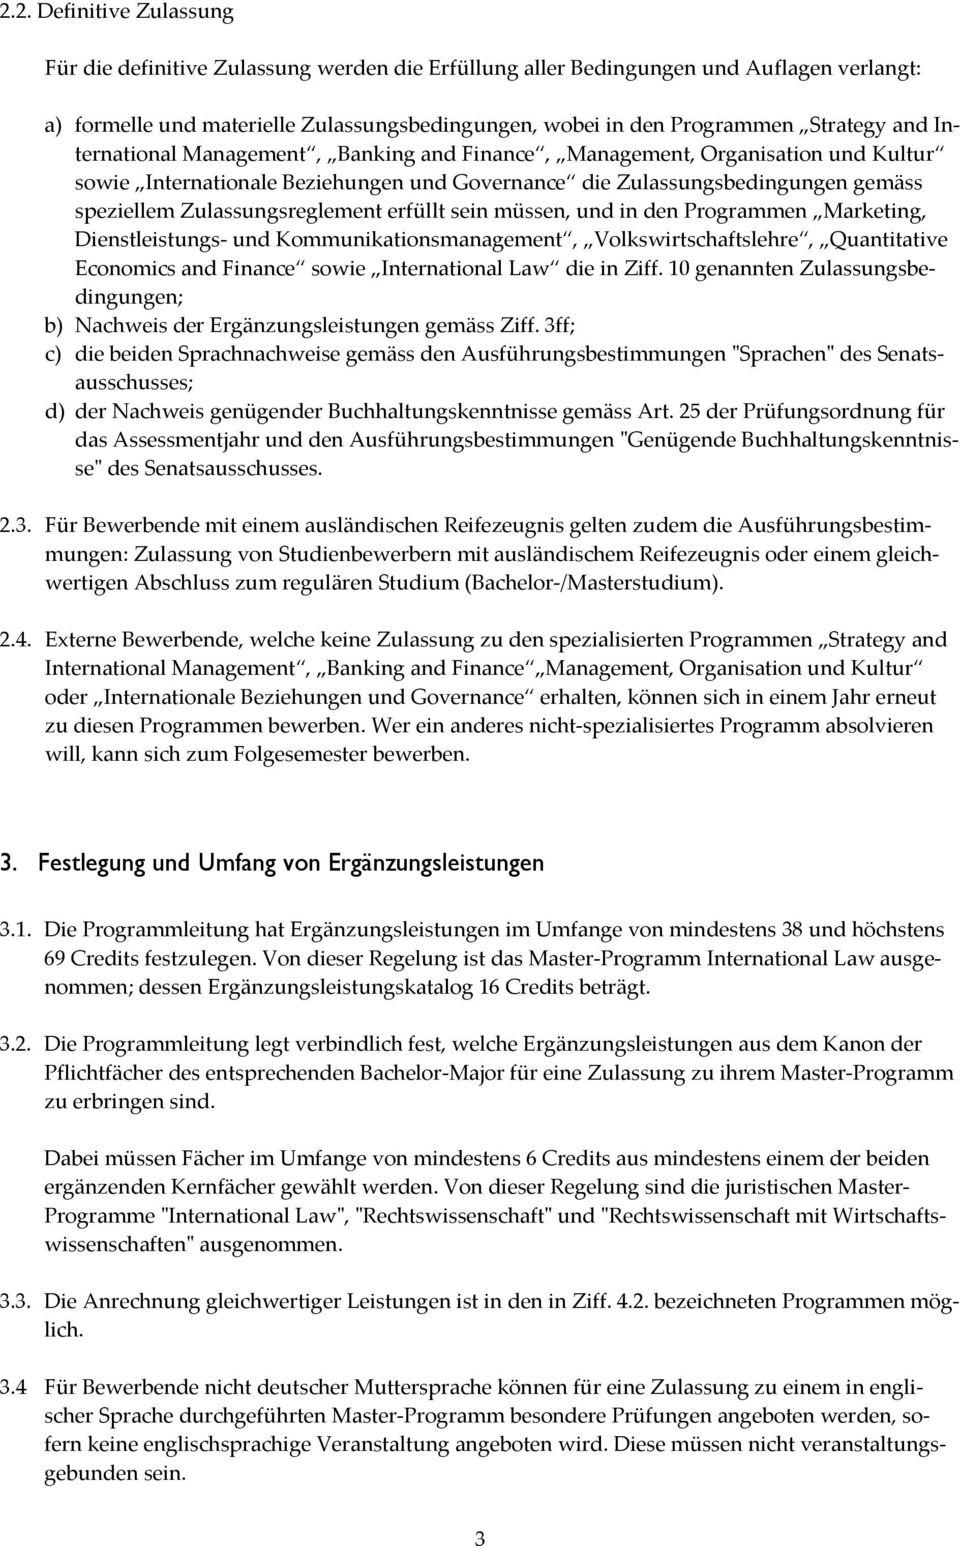 erfüllt sein müssen, und in den Programmen Marketing, Dienstleistungs und Kommunikationsmanagement, Volkswirtschaftslehre, Quantitative Economics and Finance sowie International Law die in Ziff.